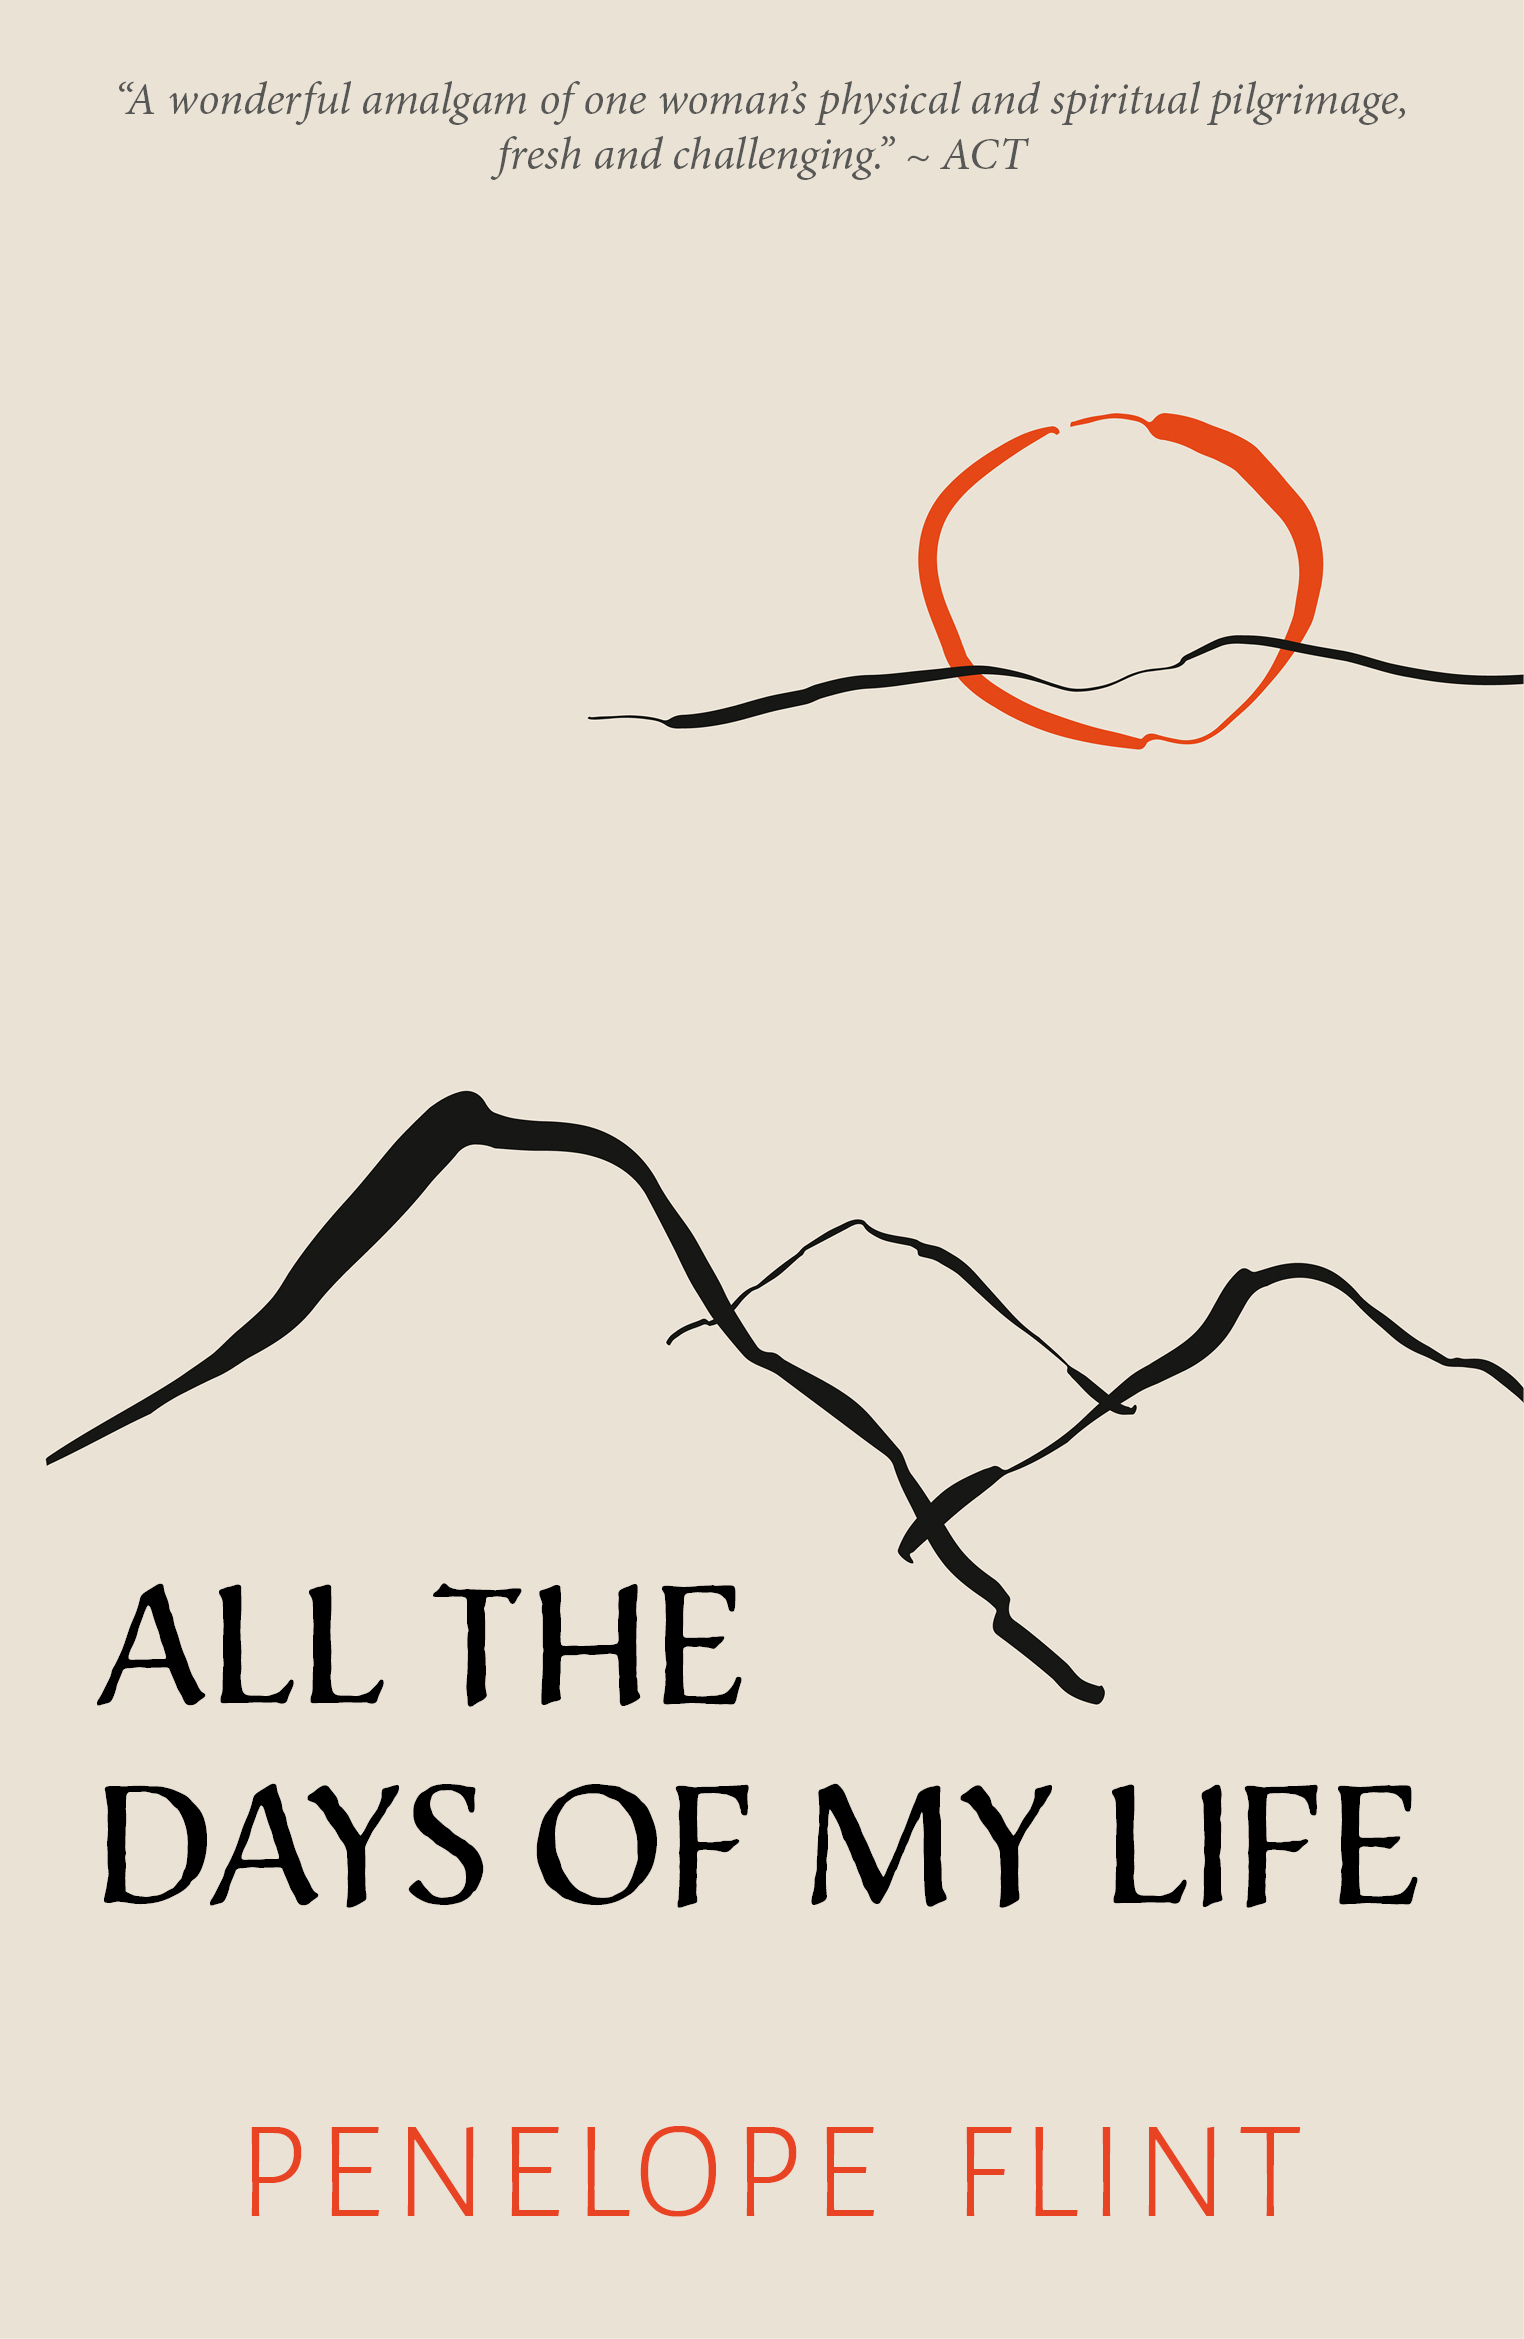 All the Days of my Life - Penelope Flint